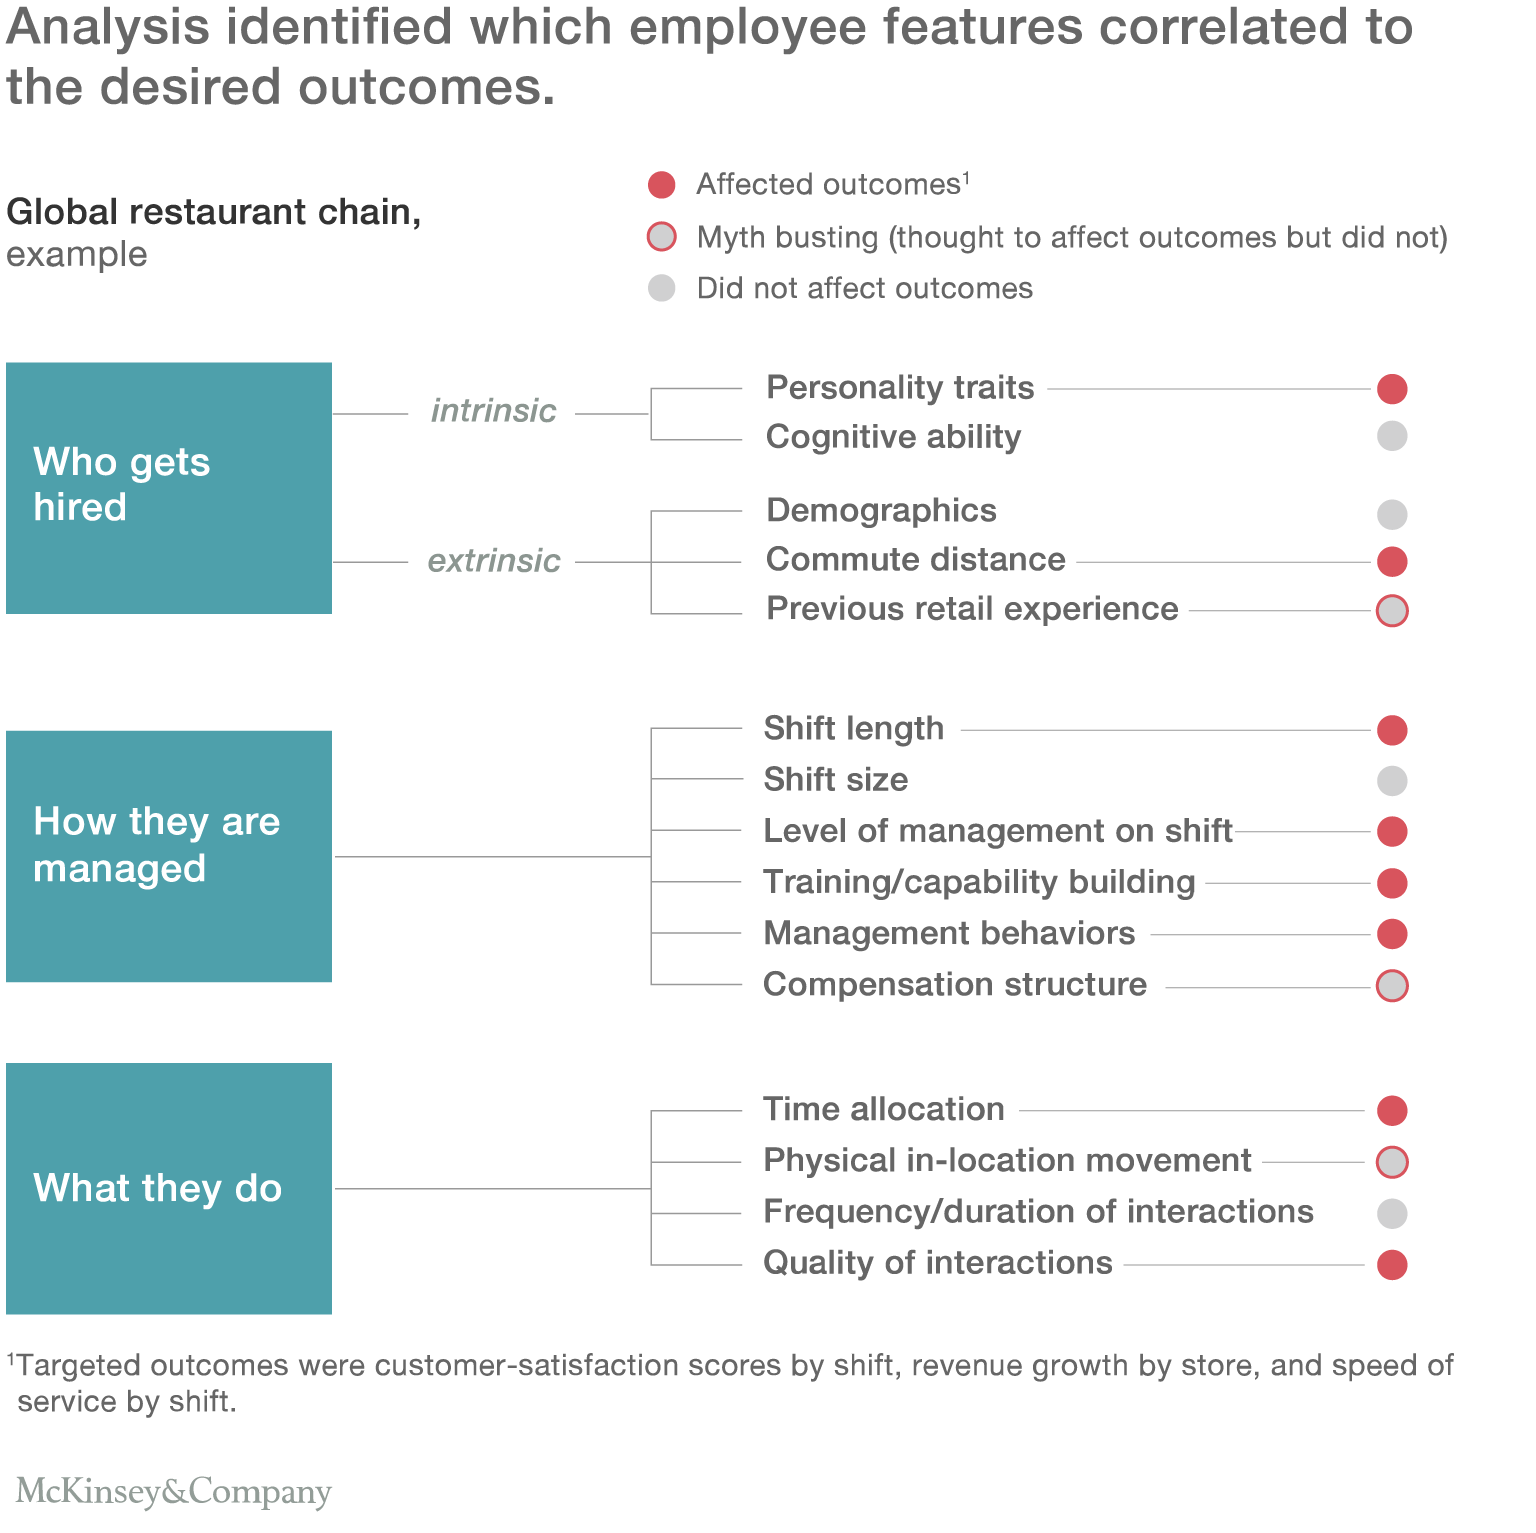 Analysis identified which employee features correlated to the desired outcomes.